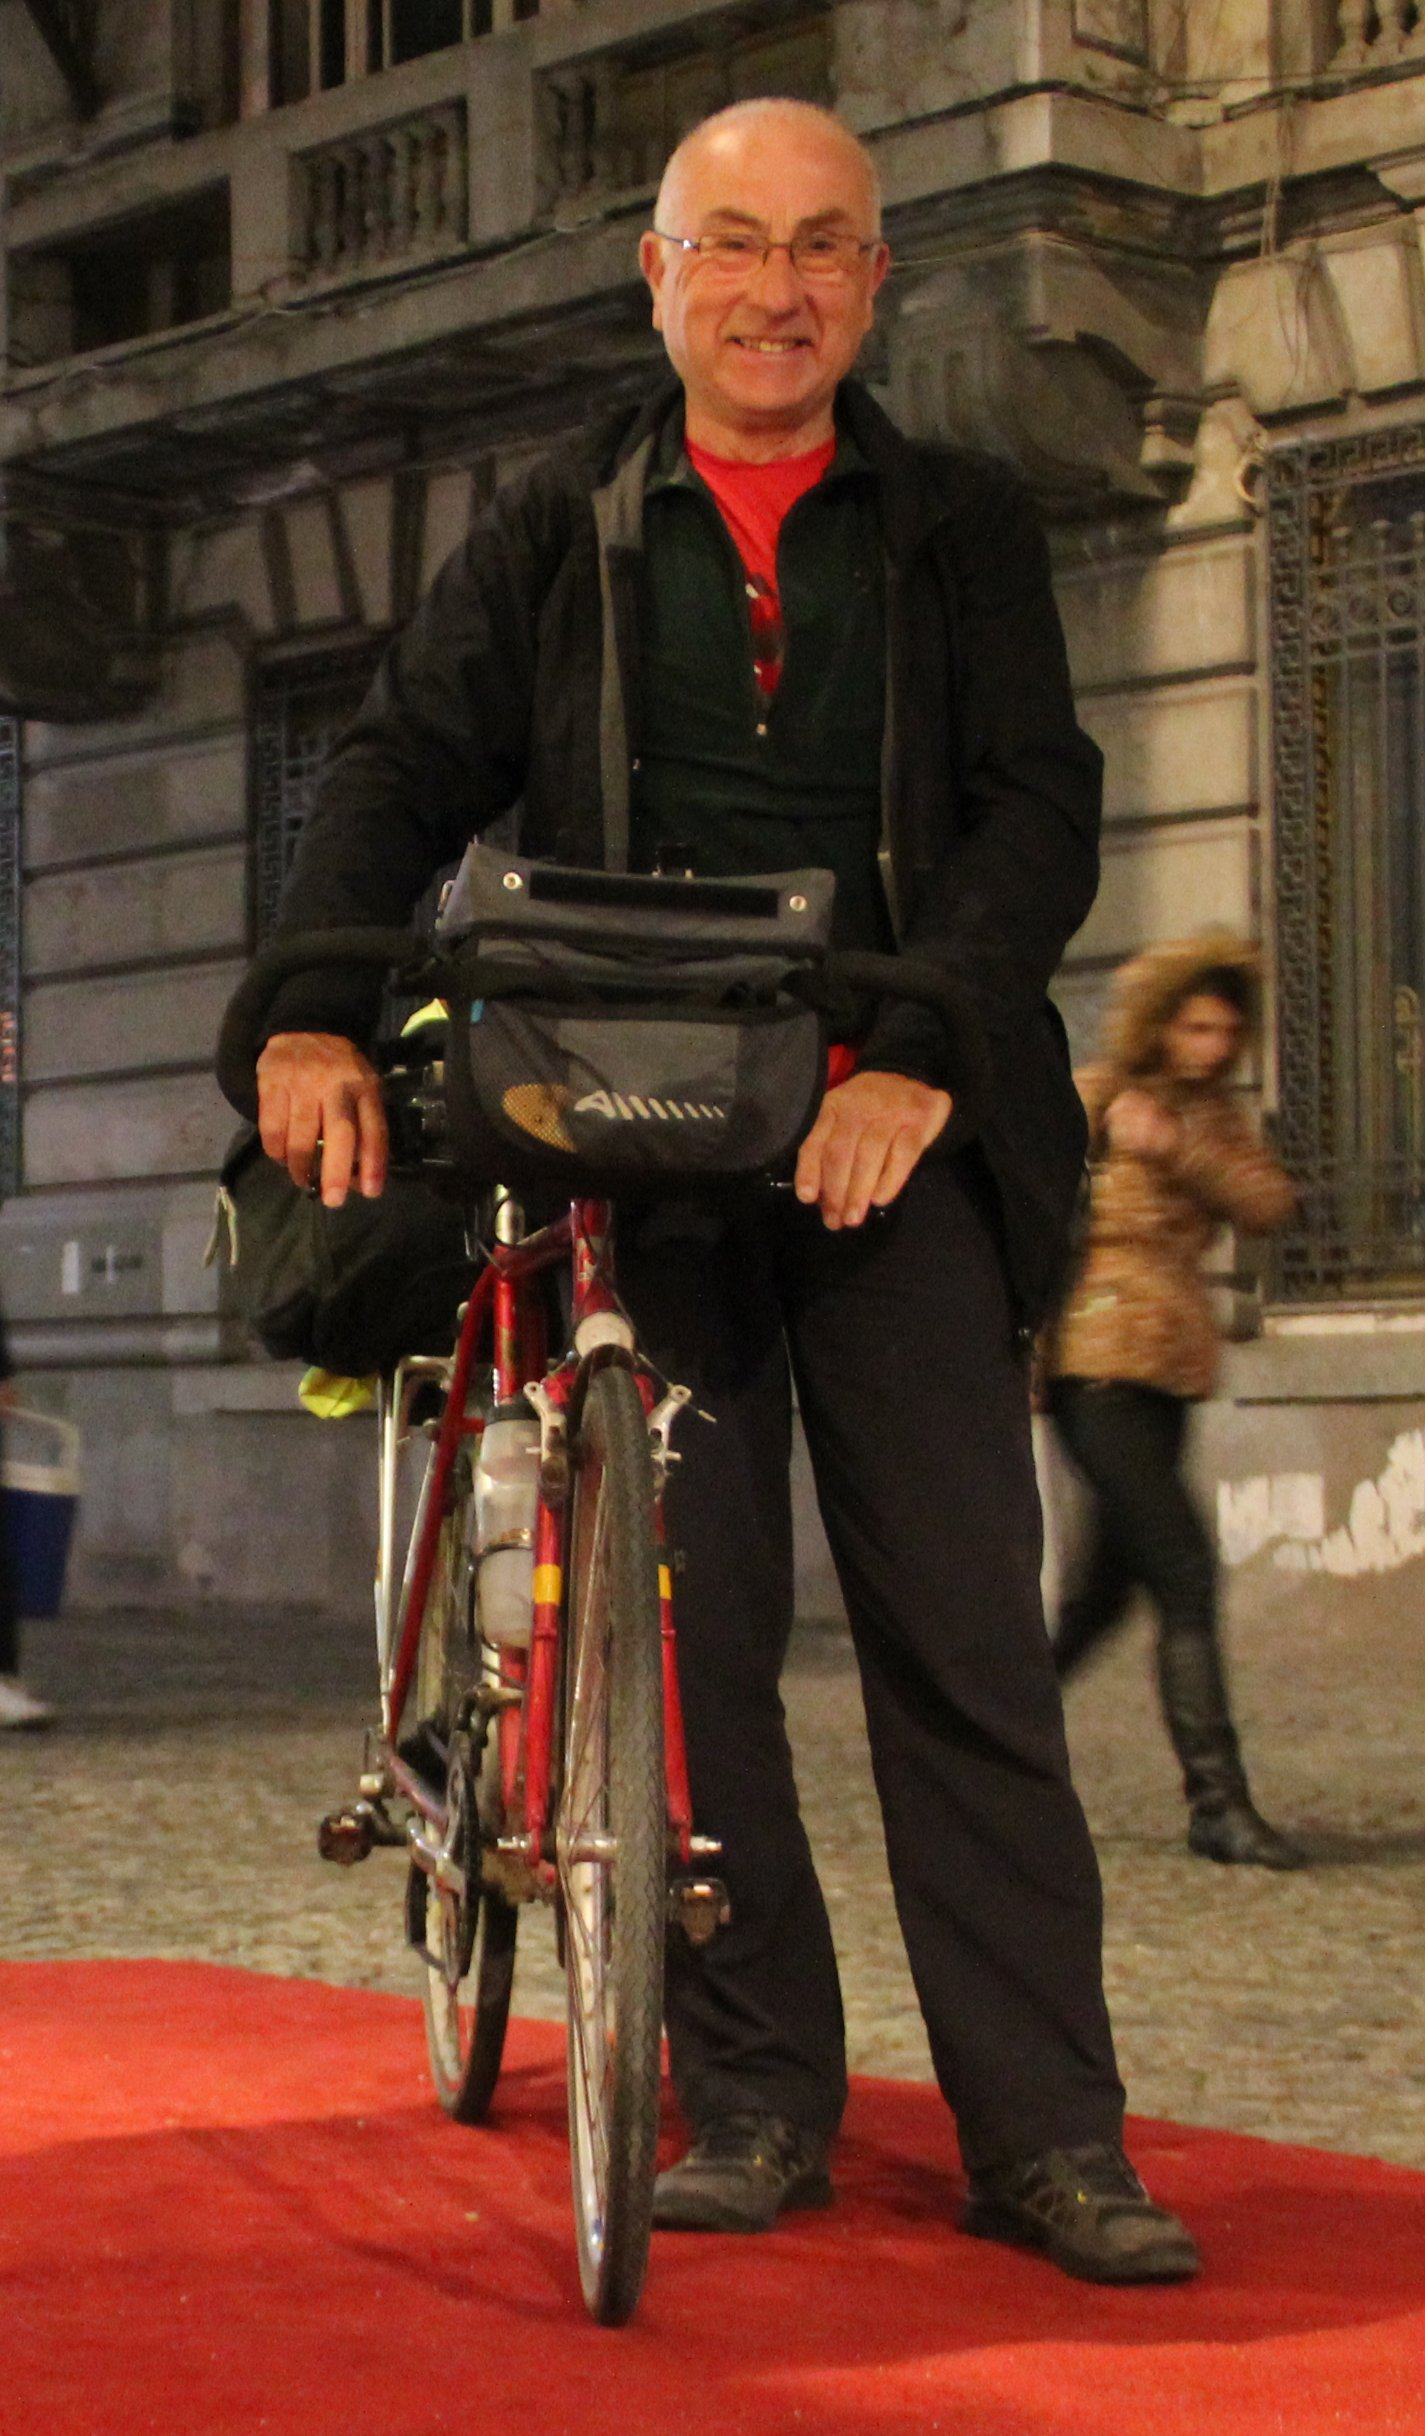 Geoff Jones & bike in Bucharest